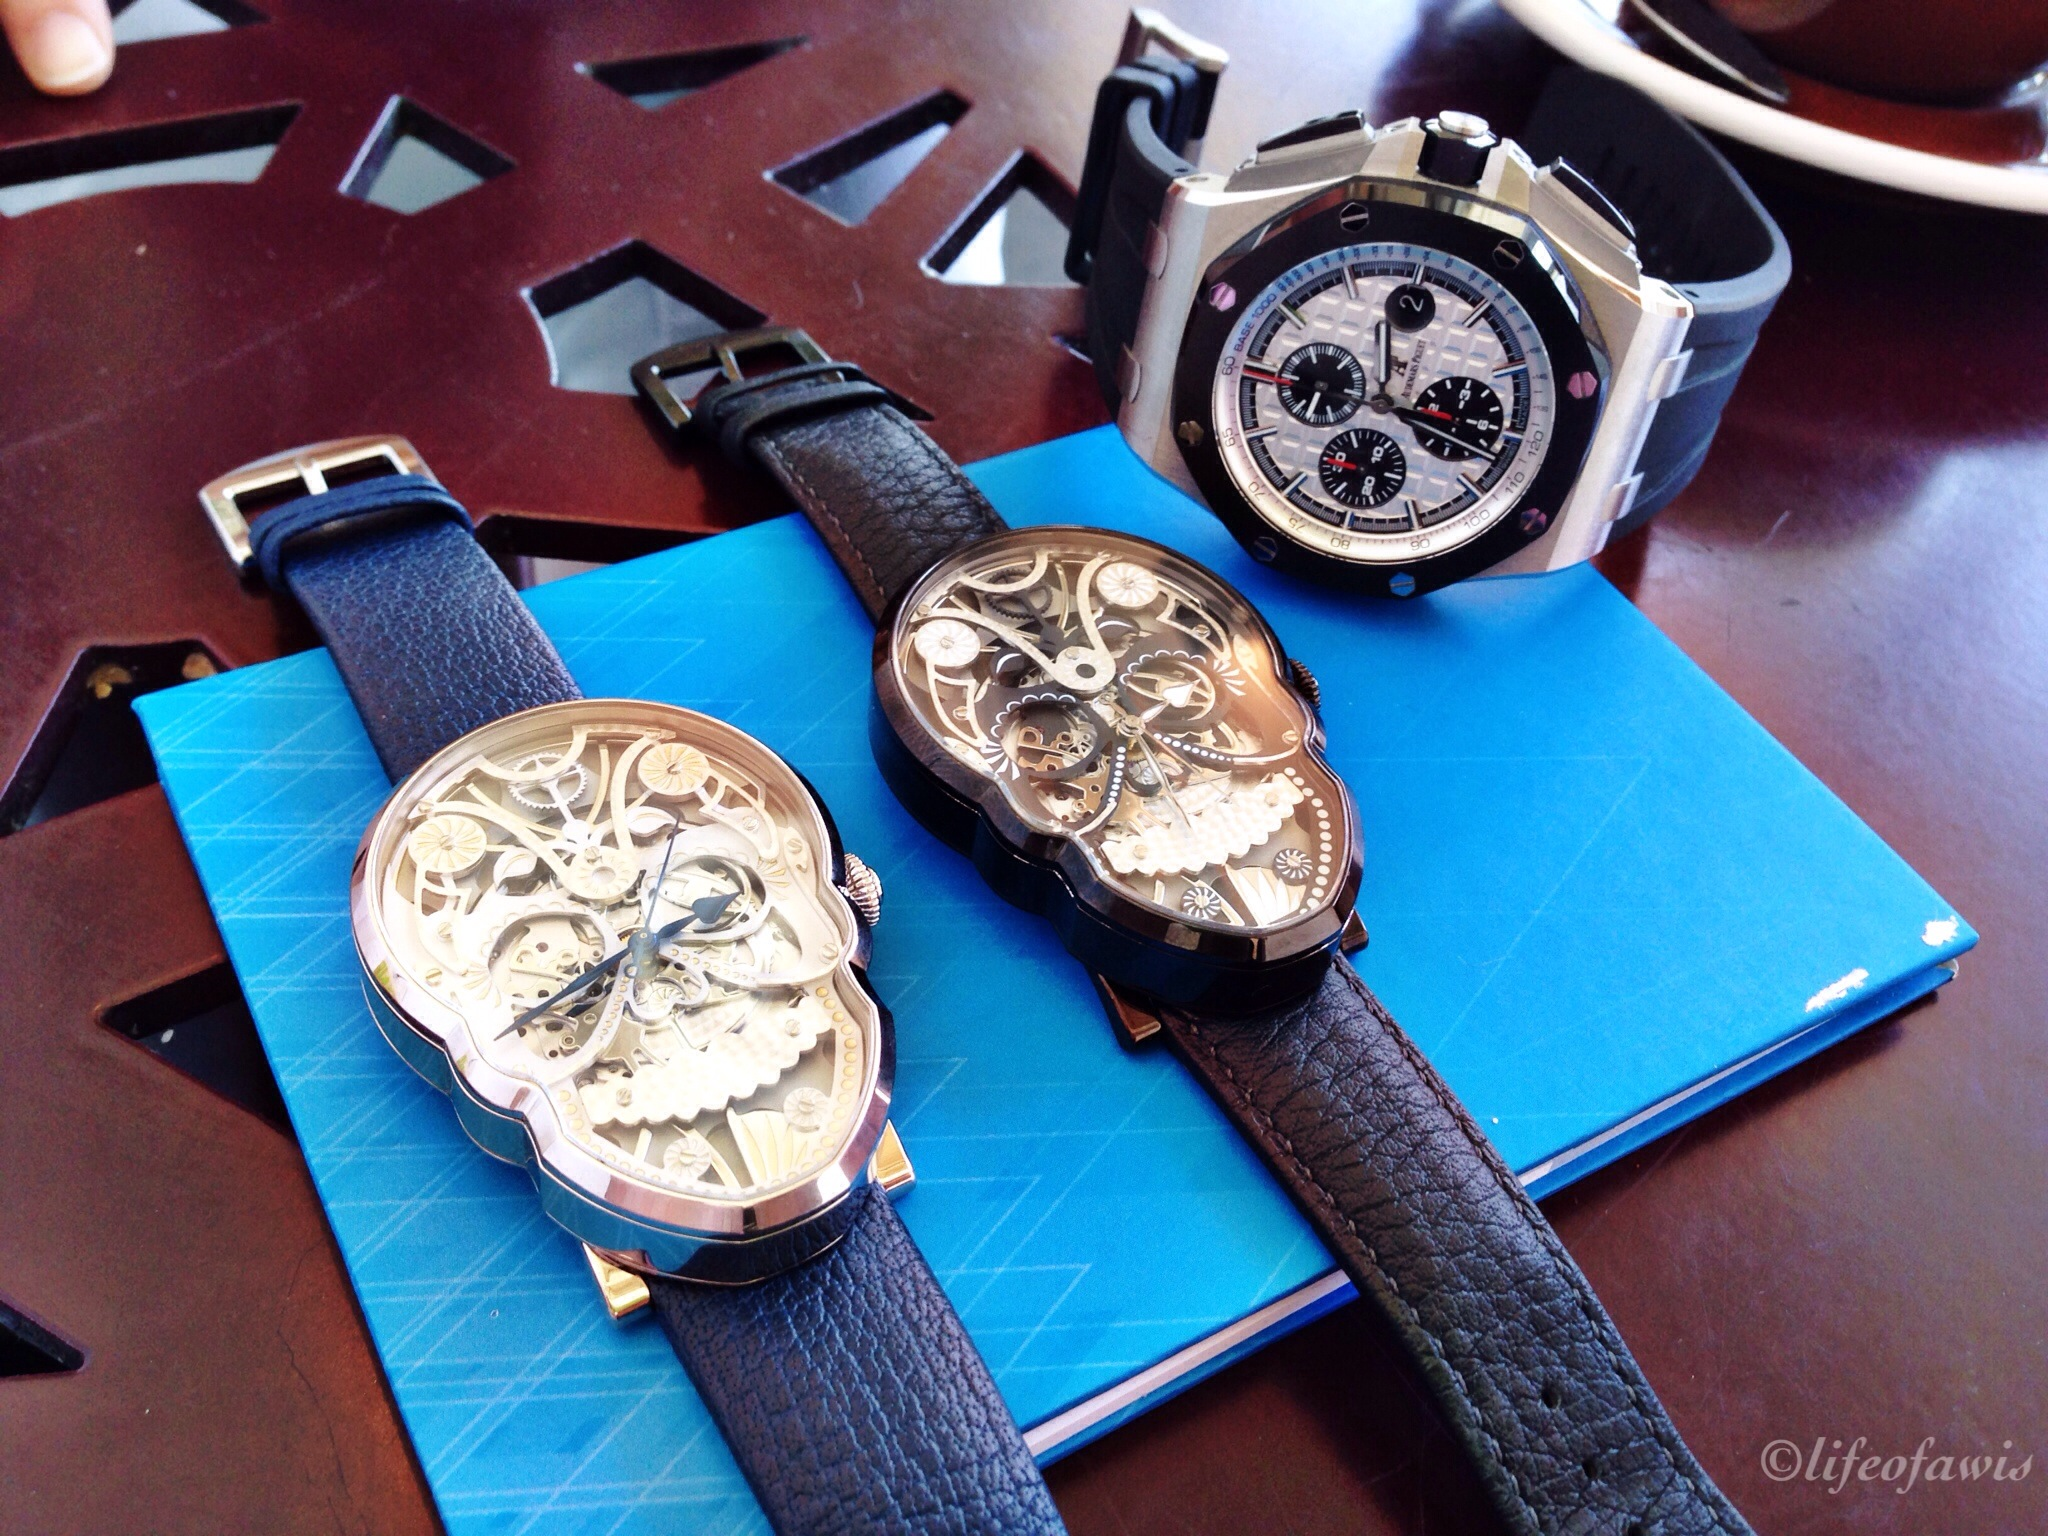 The SKULL timepieces with my Audemars Piguet.